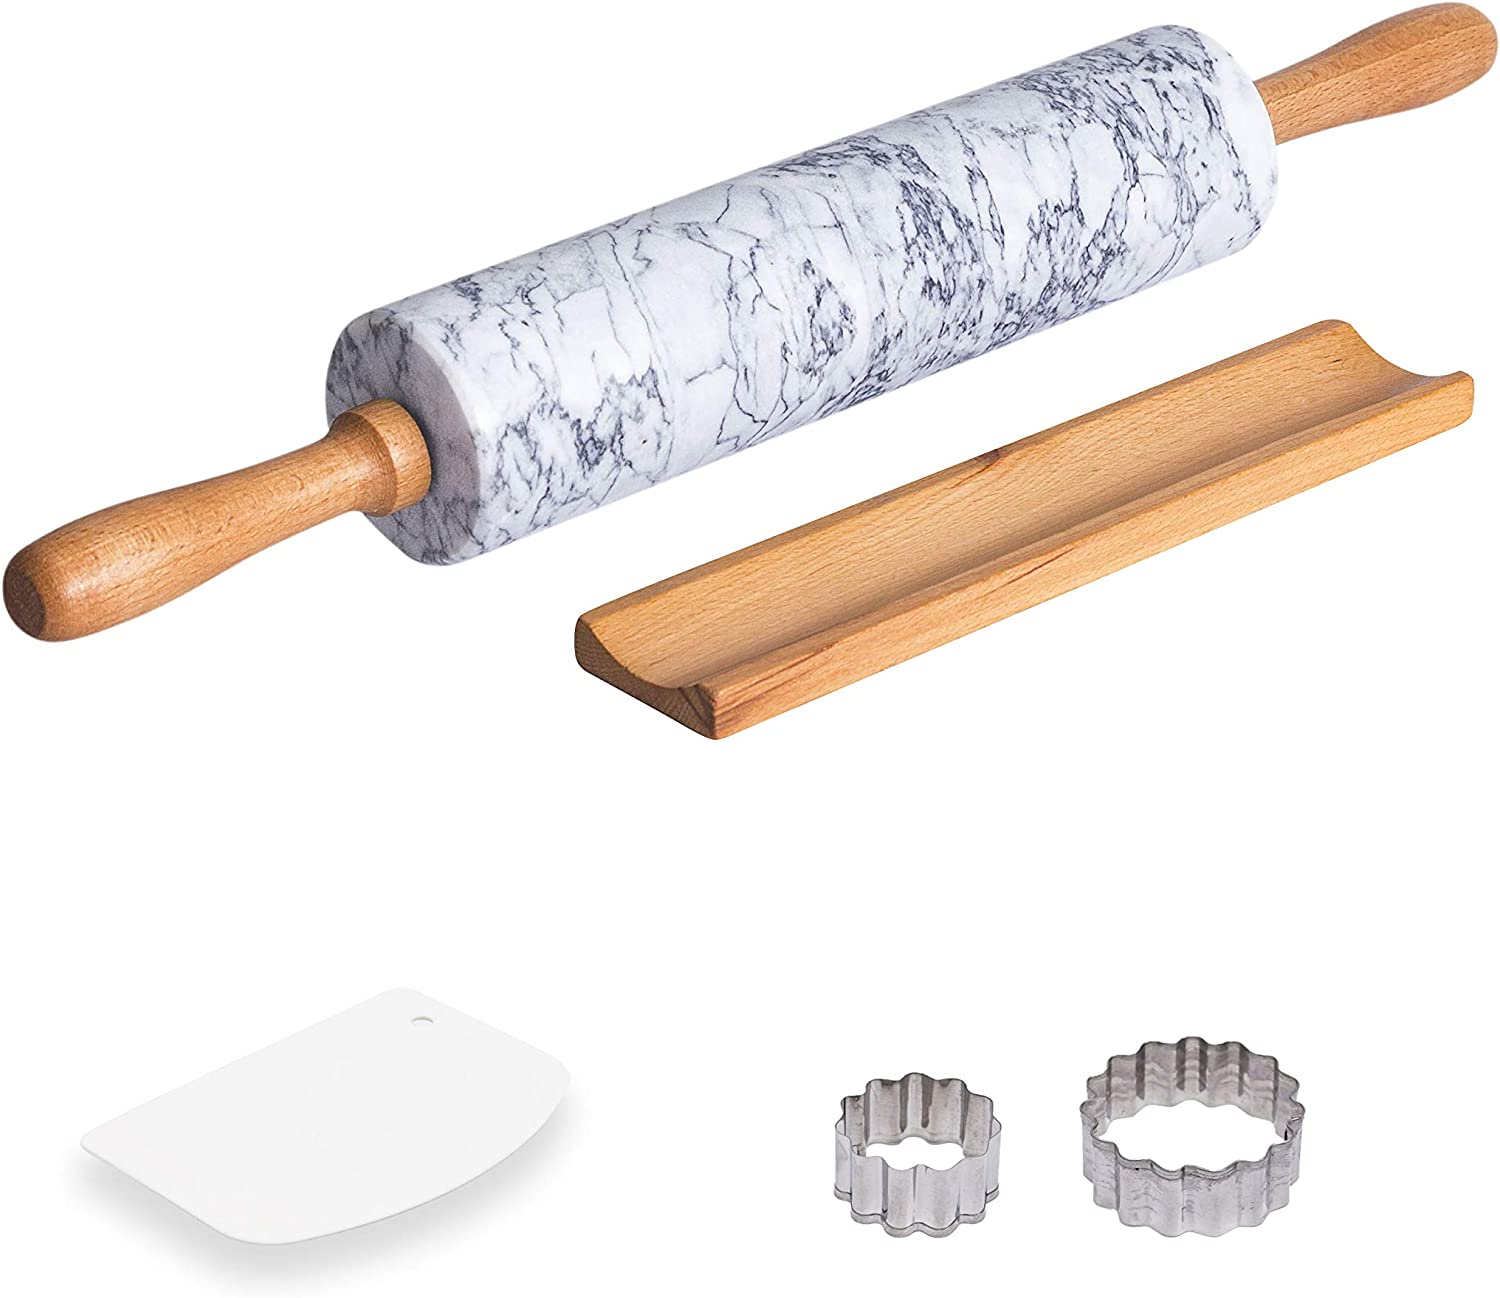 Green Marble Kitchen Rolling Pin With Wood Handles Roll Baking  And Stand 46Cm